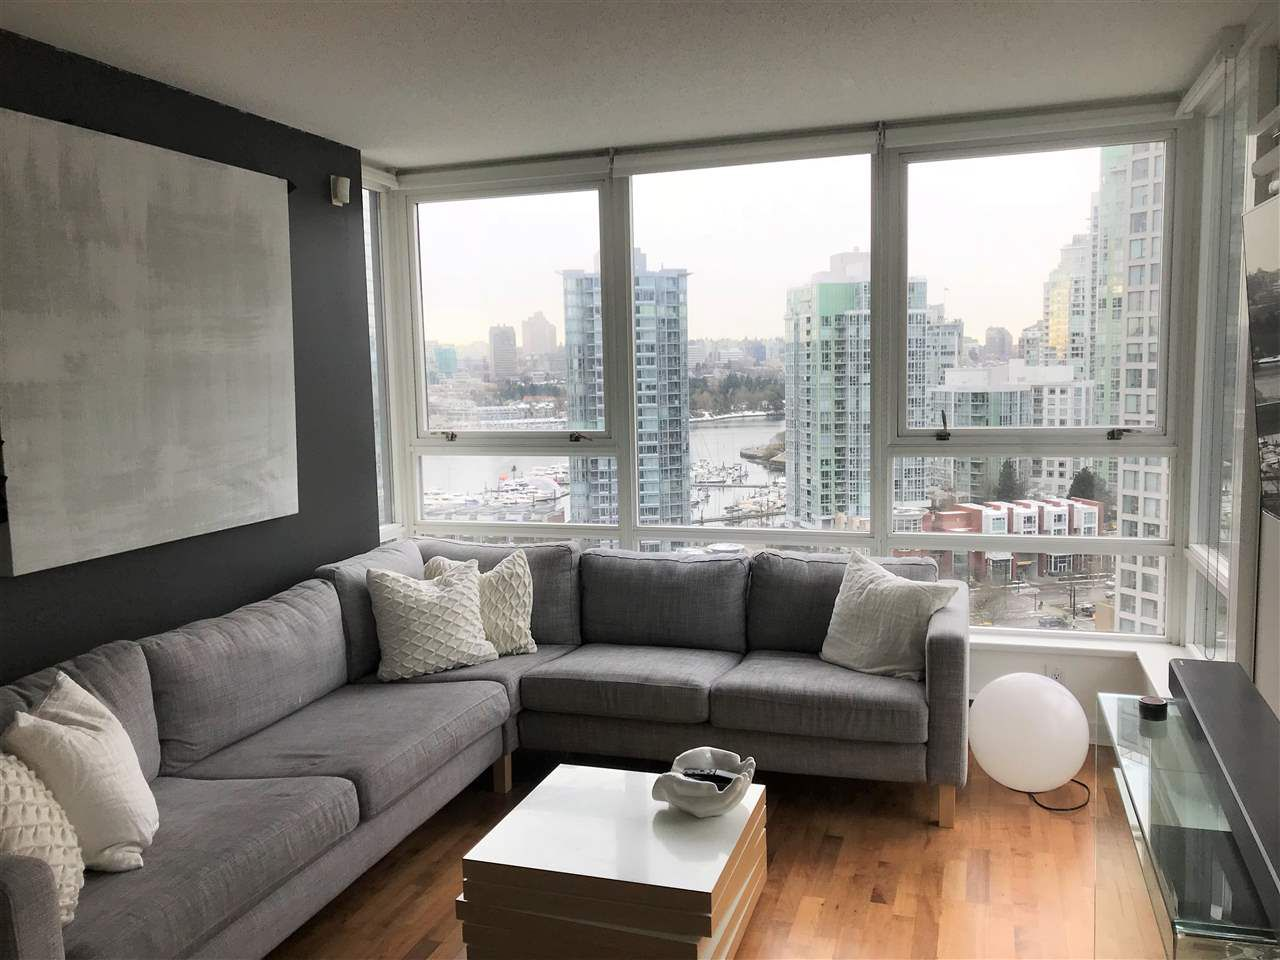 Beautiful View over False Creek. Spacious unit with master bedroom and den/2nd bedroom.